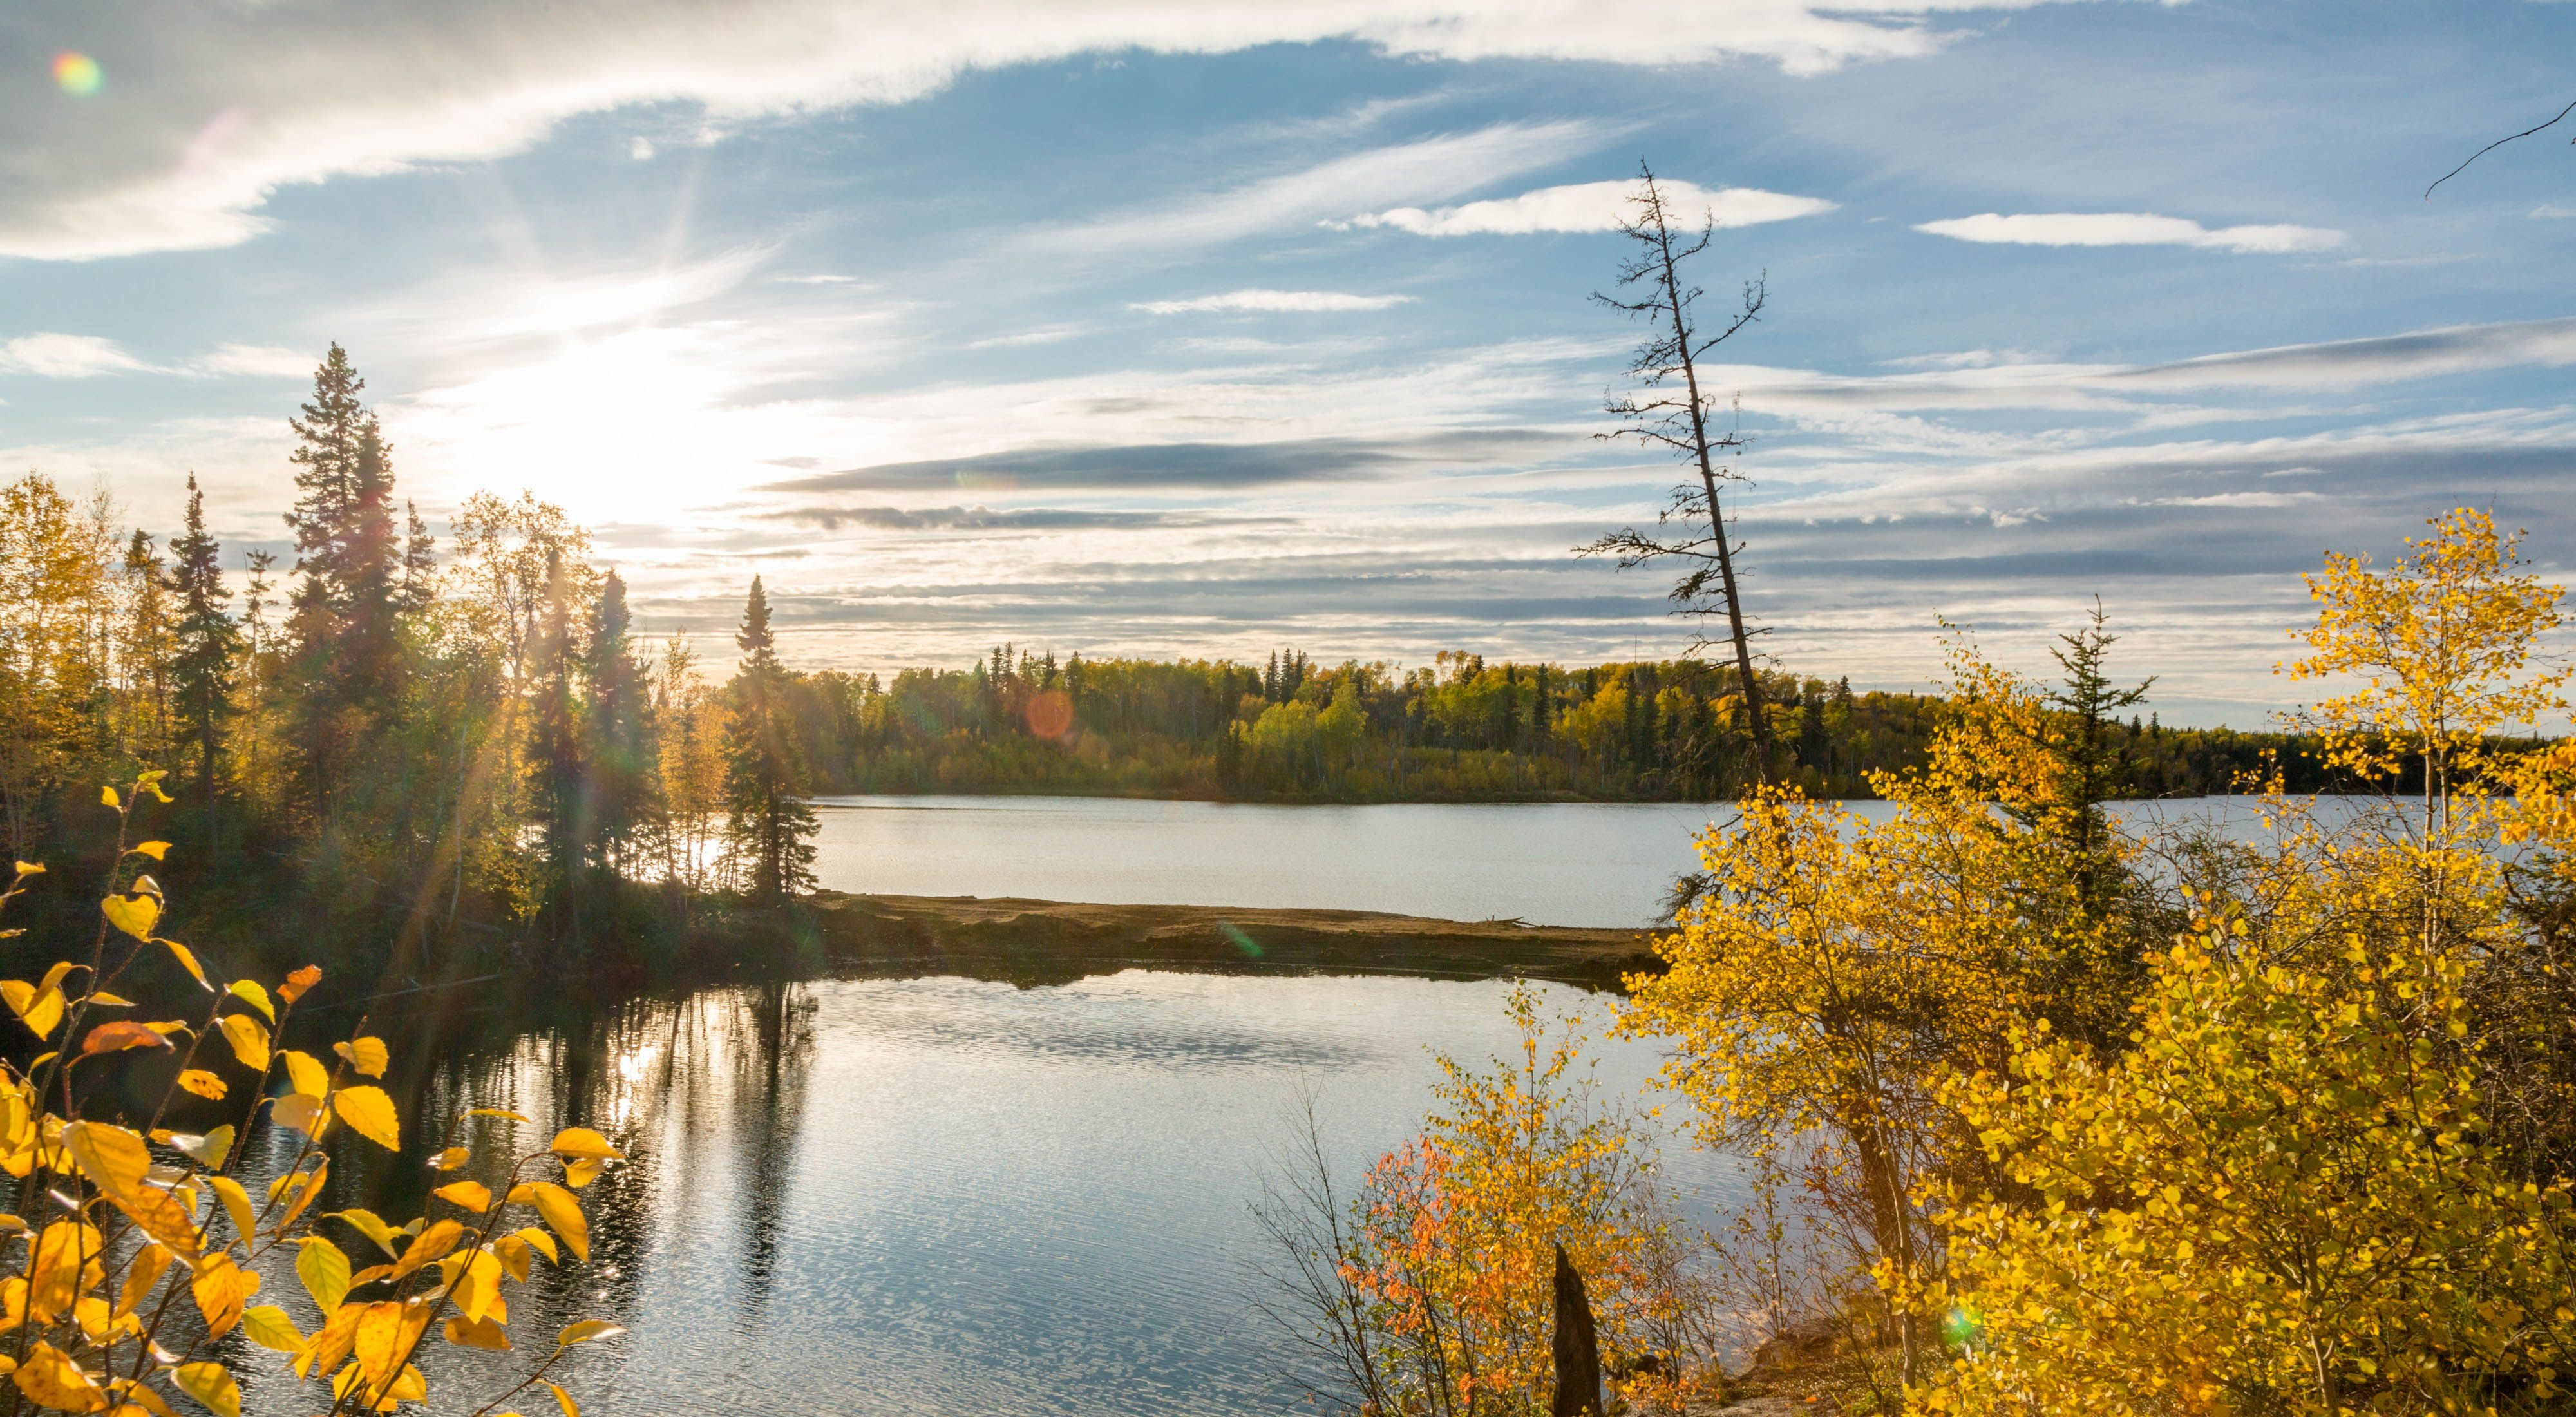 Spanning 1.3 billion acres, the boreal forest is the Earth's largest terrestrial carbon sink.